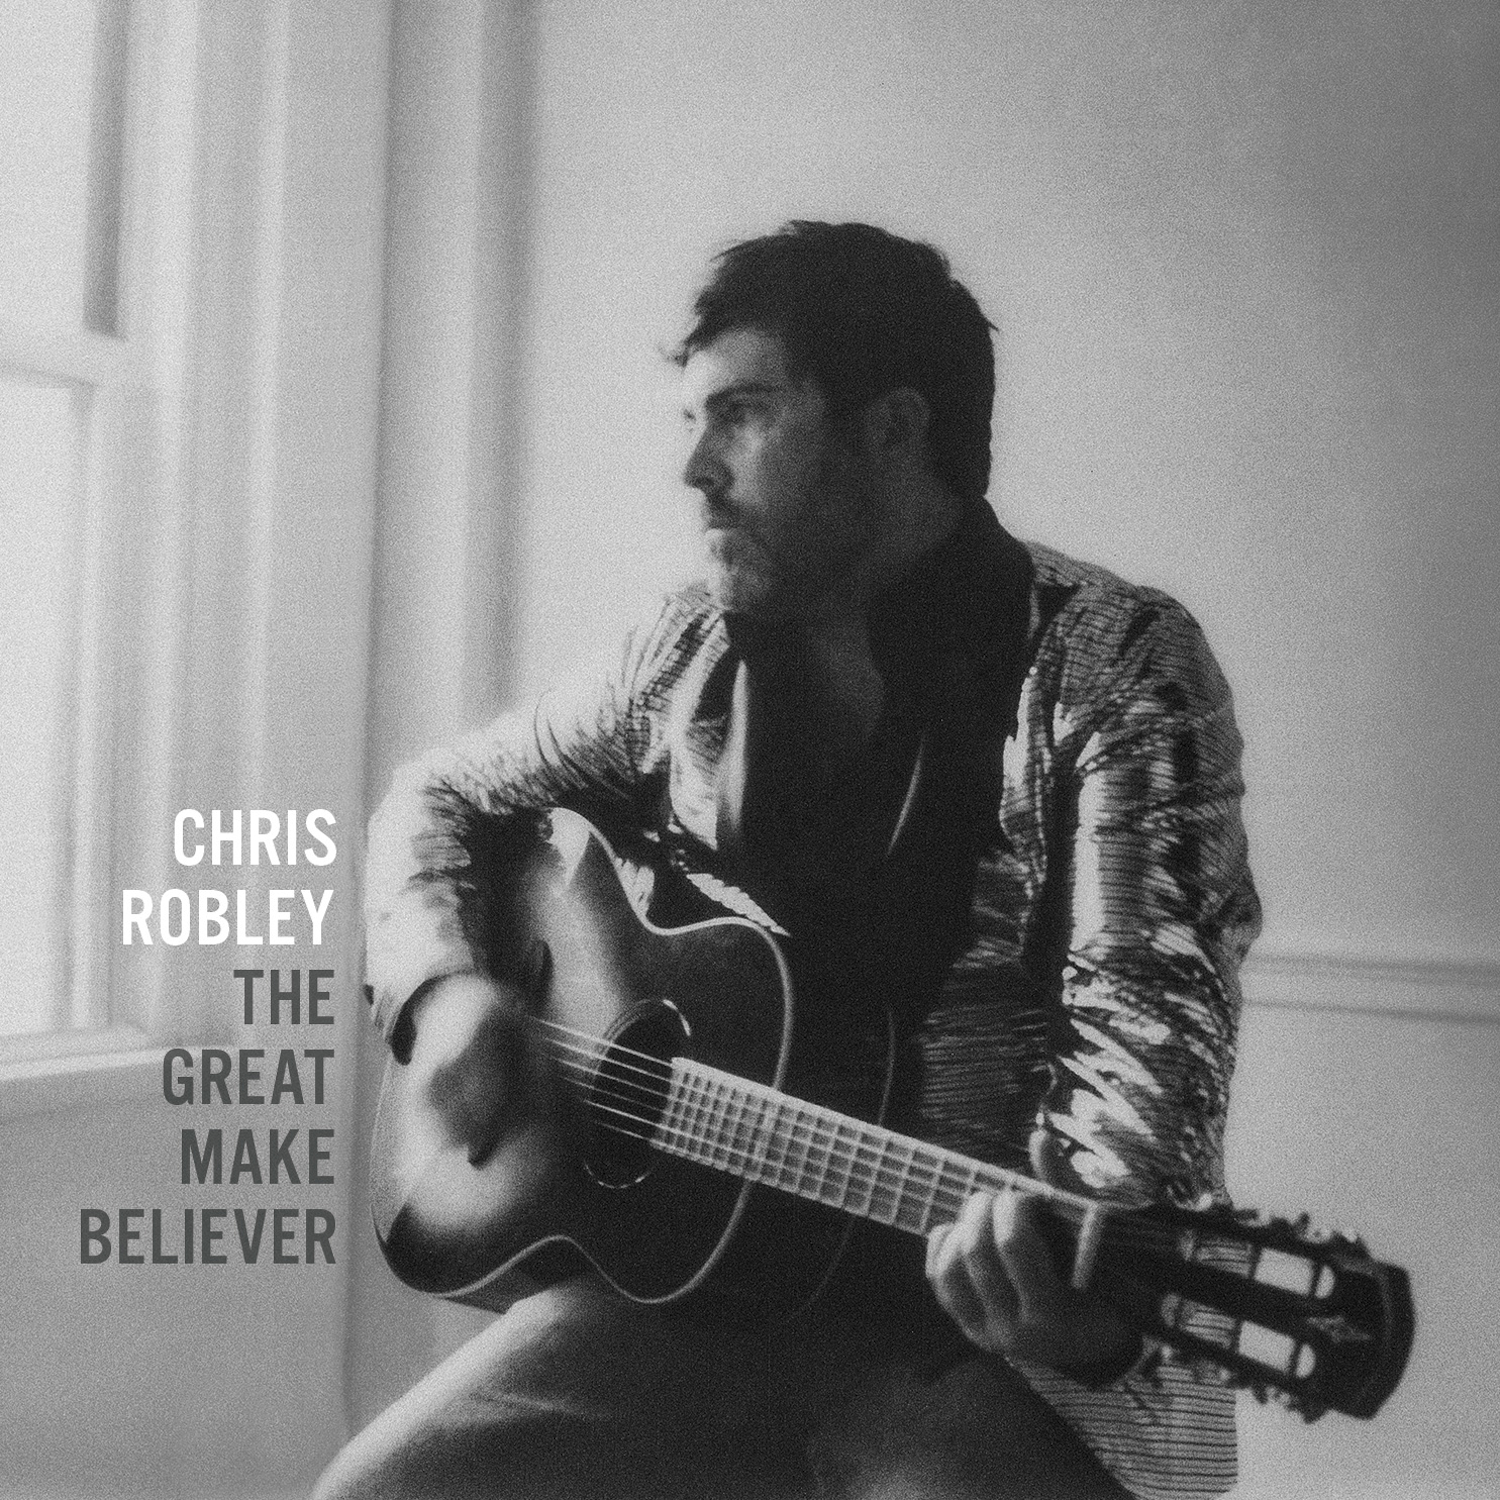 Chris Robley - The Great Make Believer